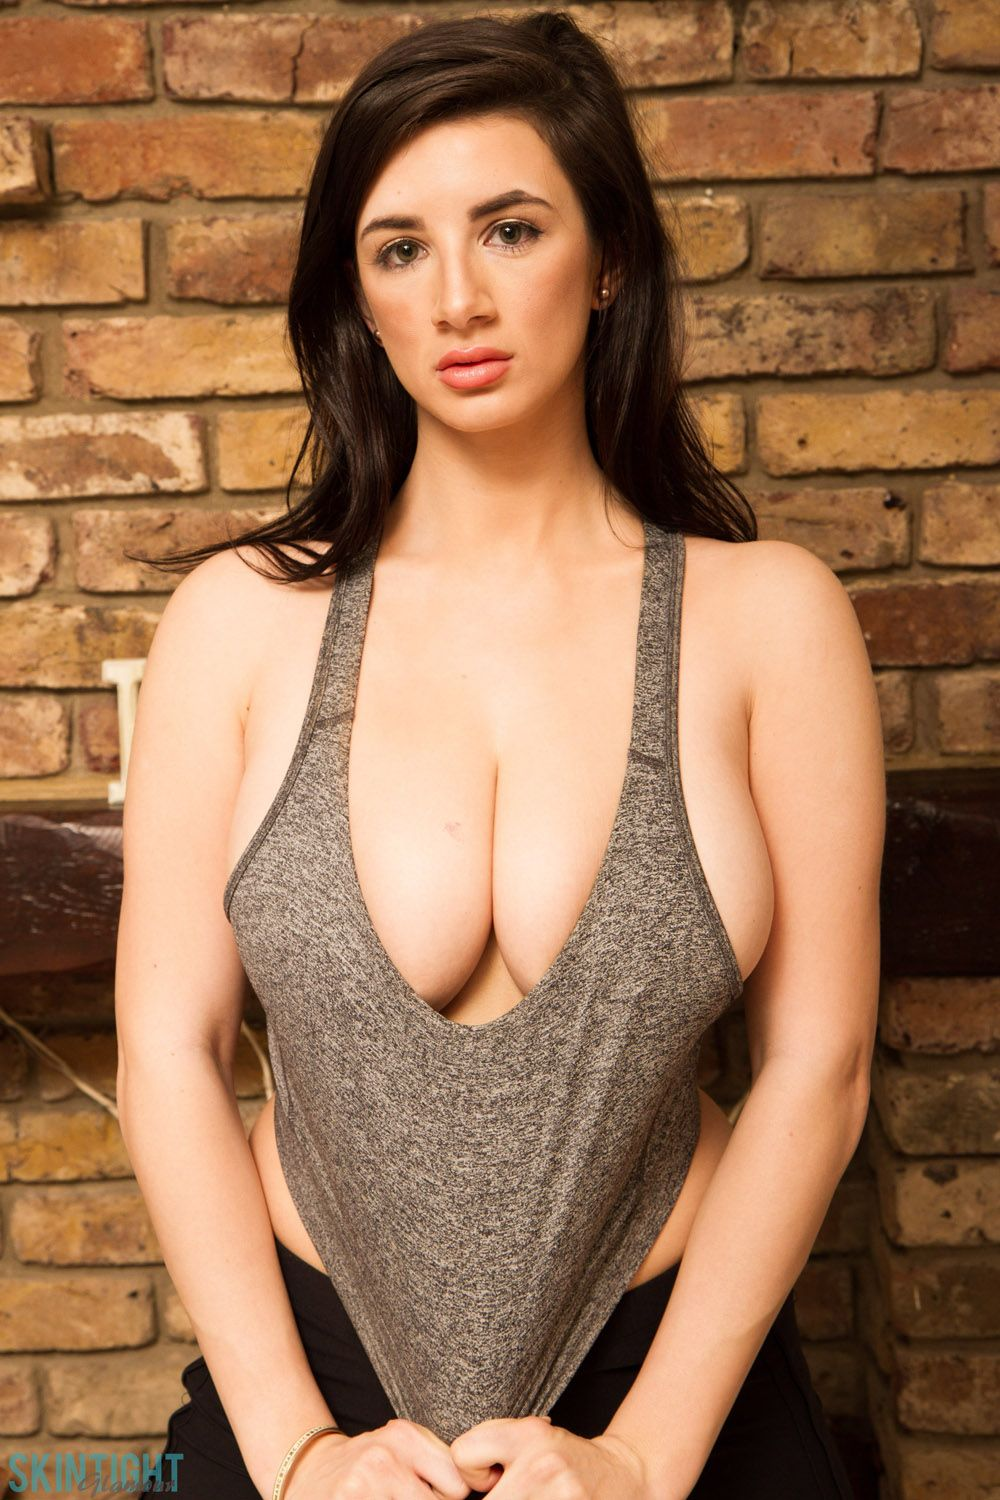 cara ruby #bigboobs #natural #girls | amazing boobs | pinterest